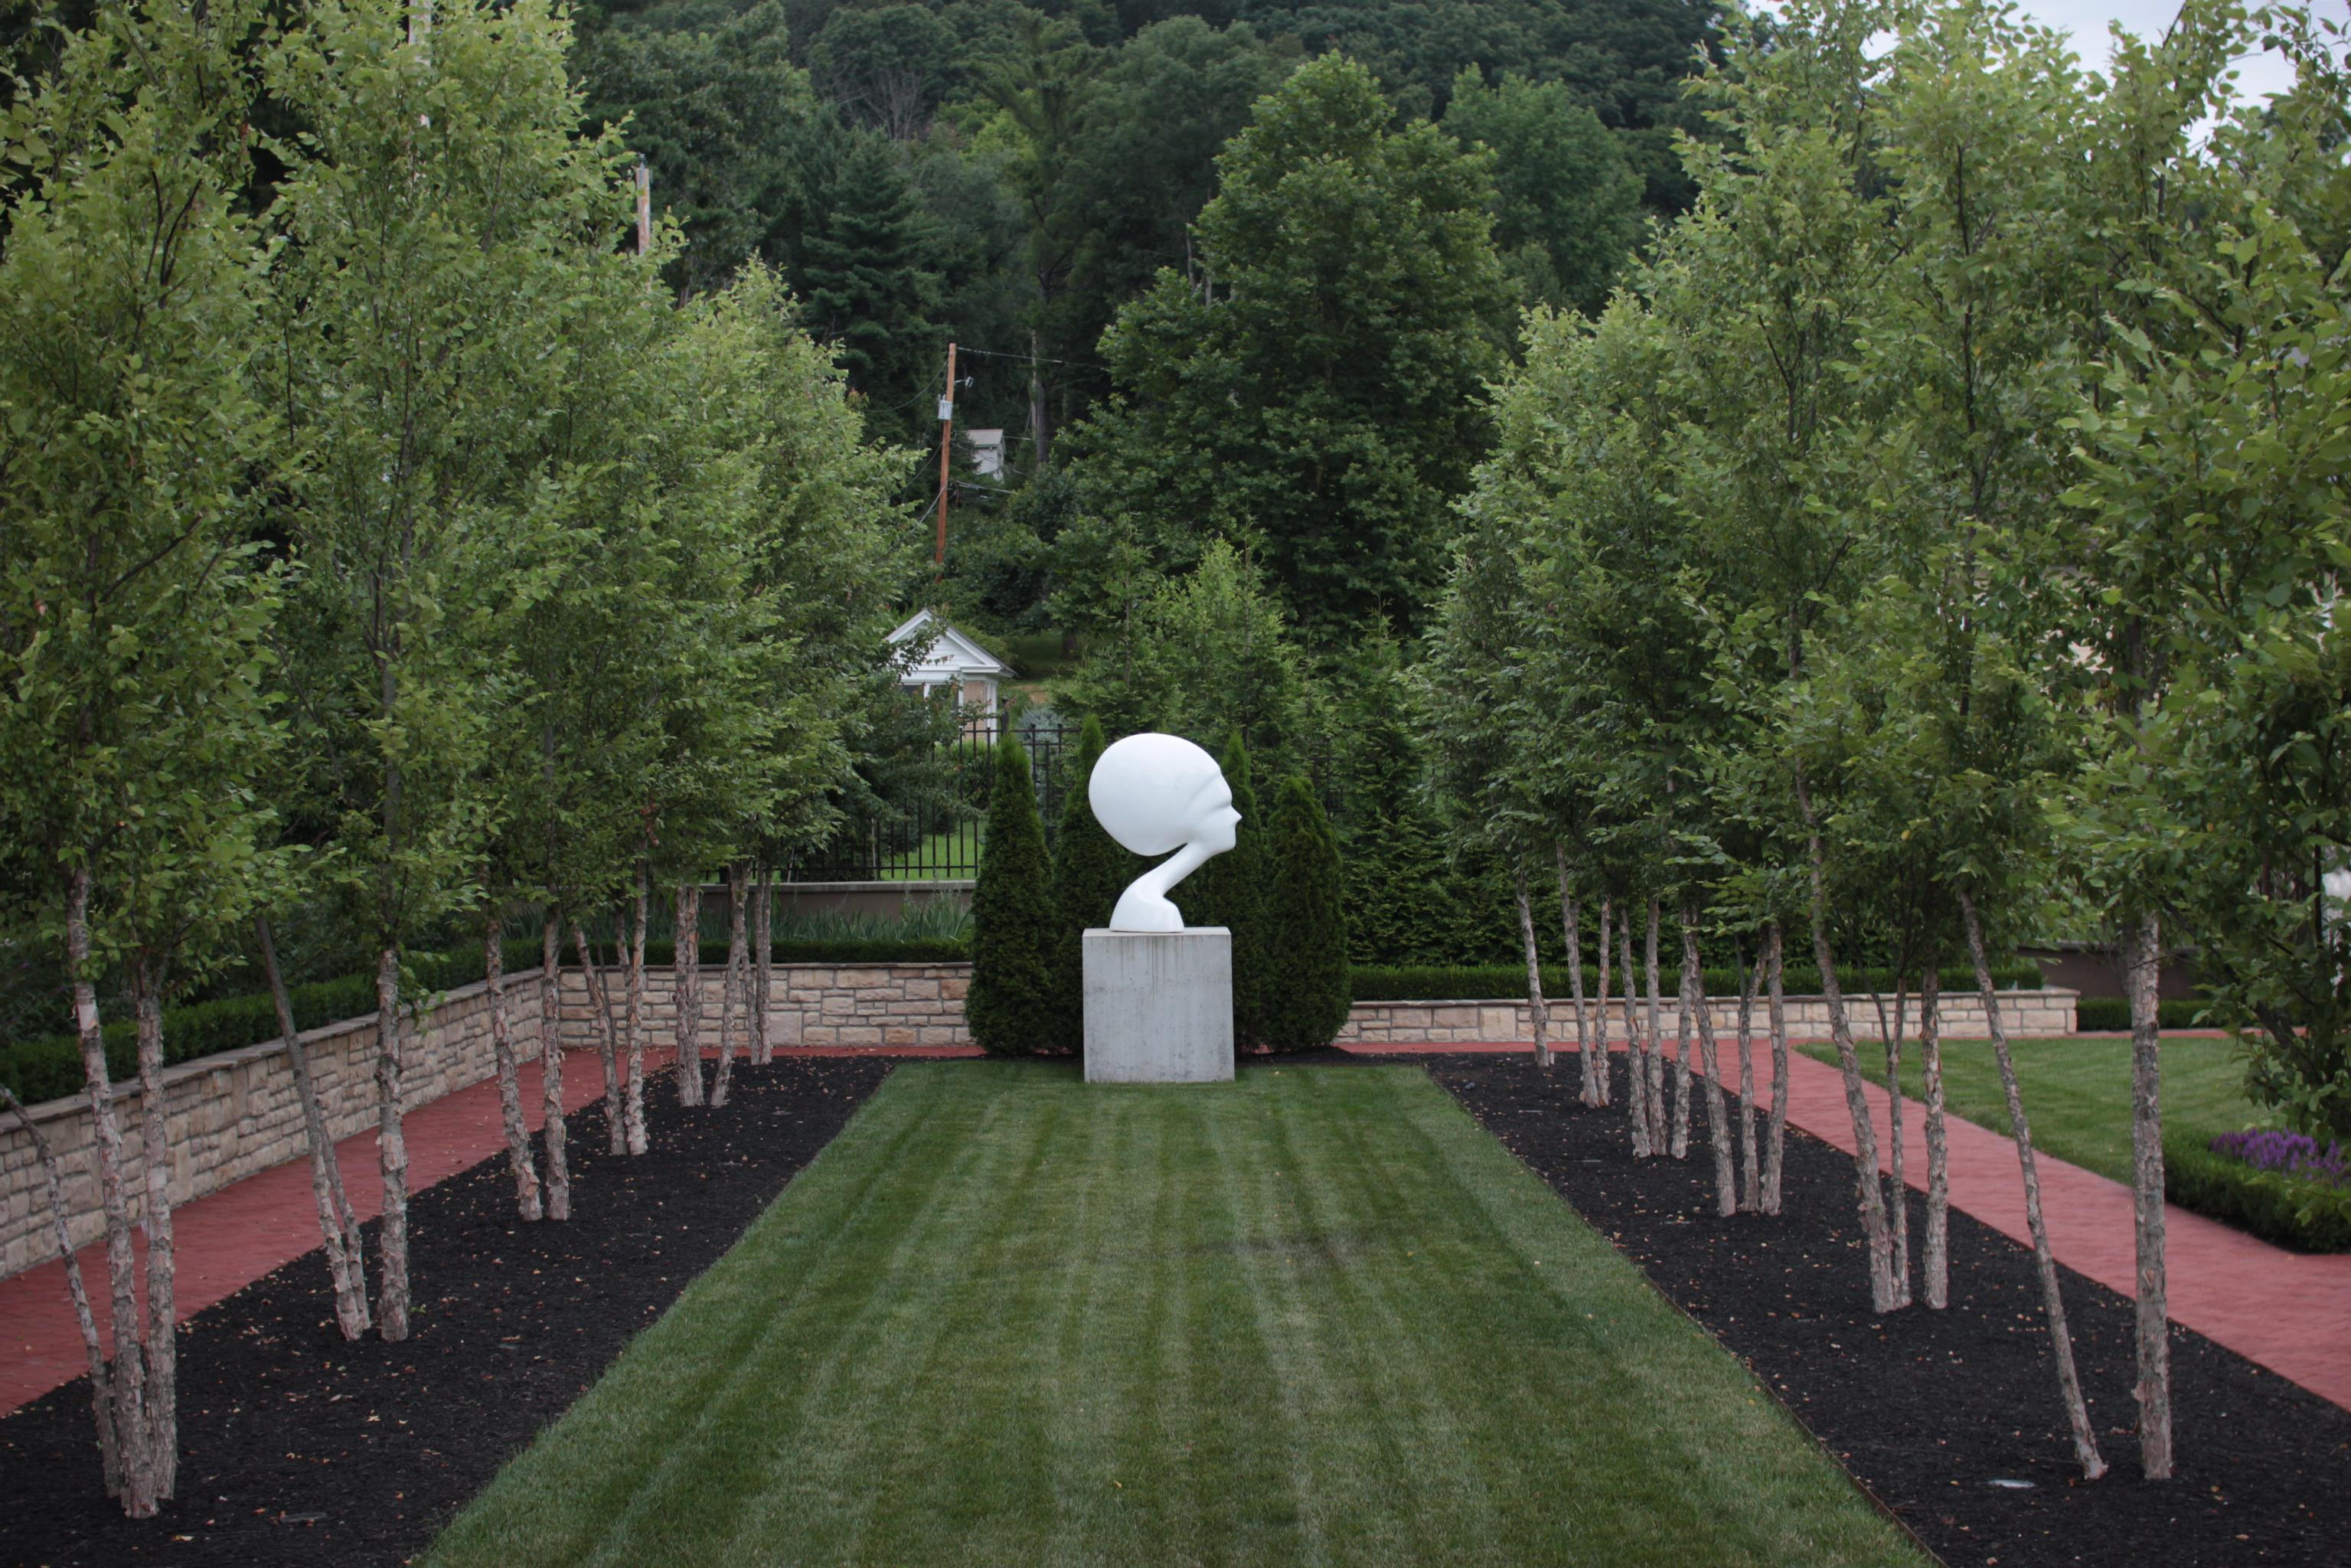 photo of a head sculpture at the end of a strip of grass, between two rows of trees